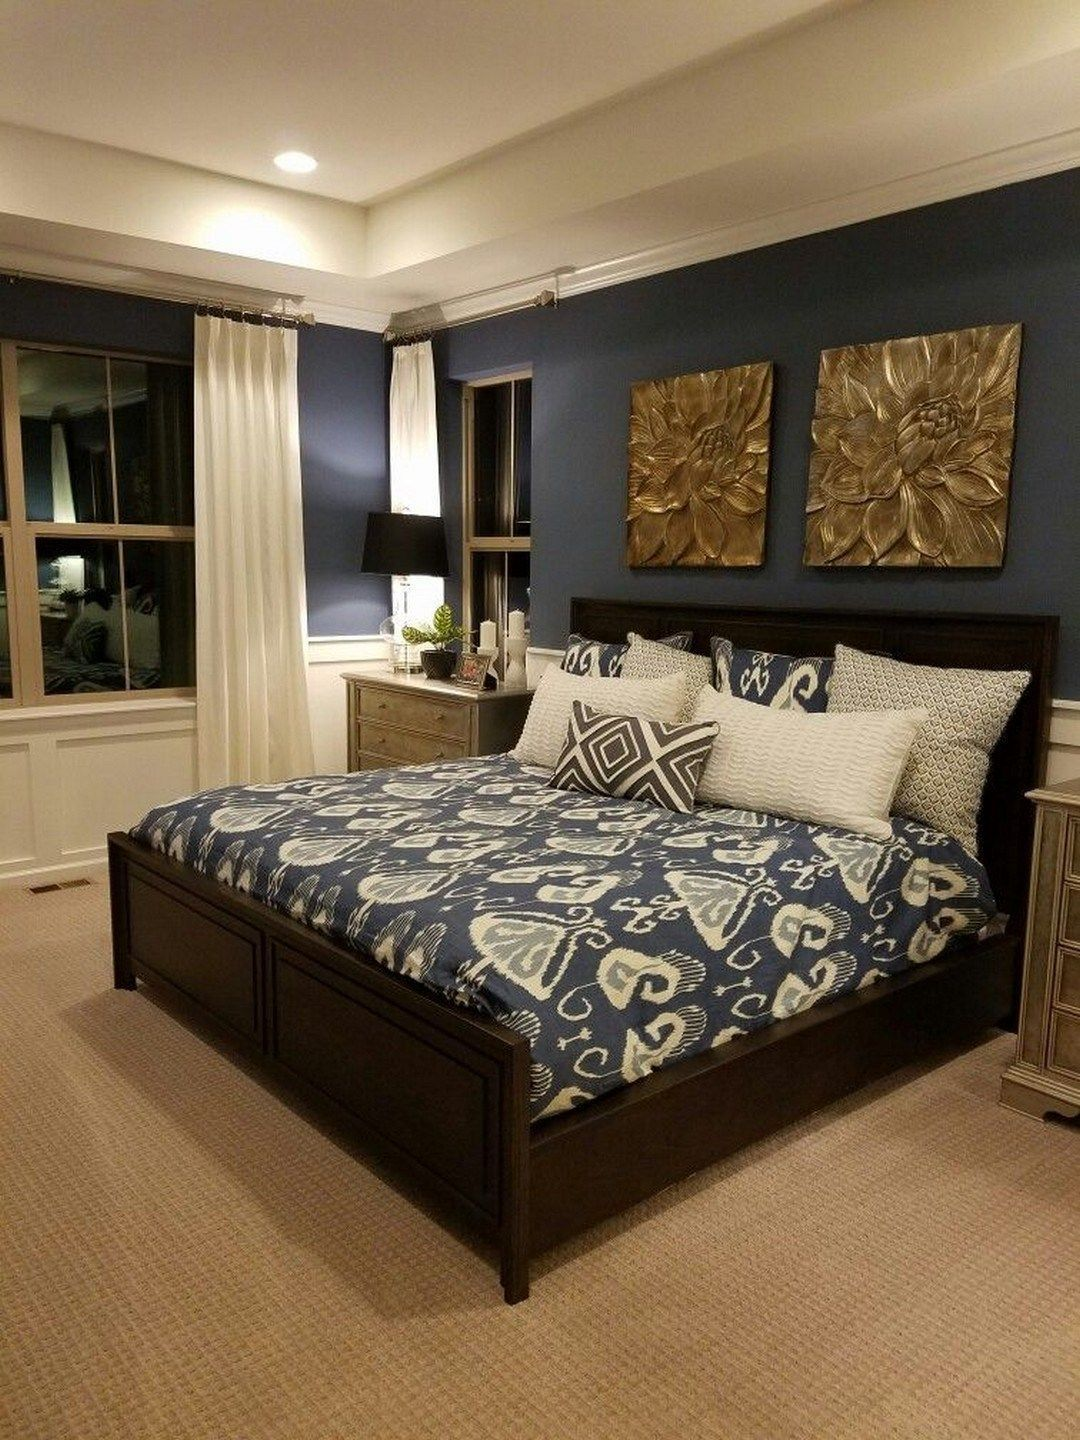 200 Fabulously Transform Bedroom Decor For Romantic Retreat Homestya Small Bedroom Small Apartment Bedrooms Small Bedroom Ideas For Couples